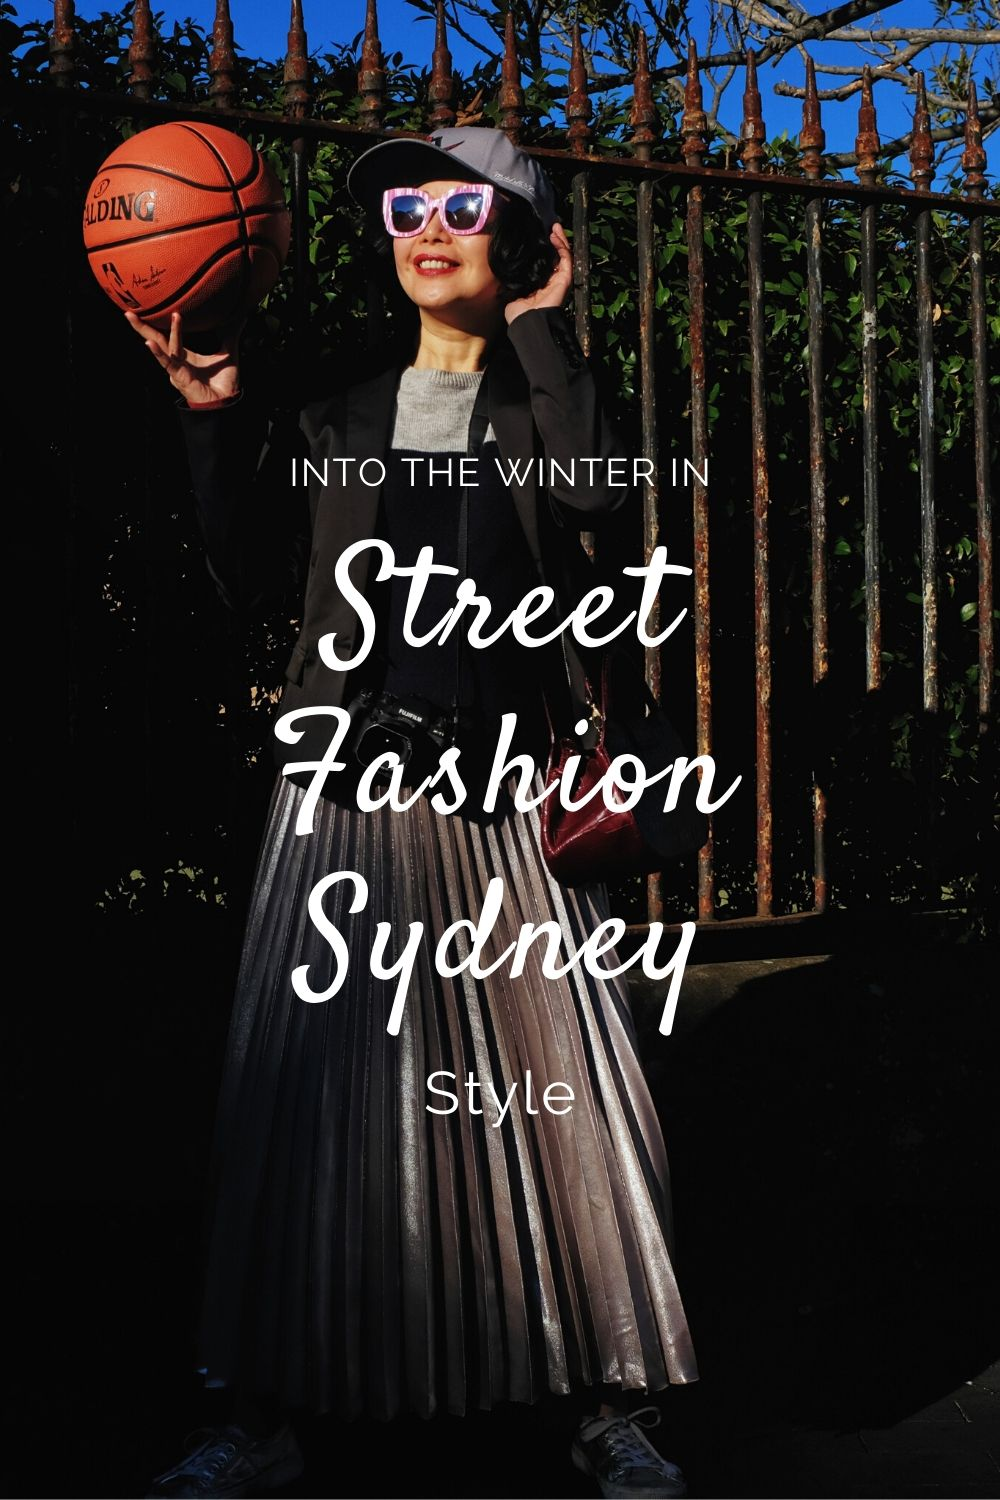 Into the Winter in Street Fashion Sydney Style. Photoshoot by Kent Johnson for White Caviar Life.